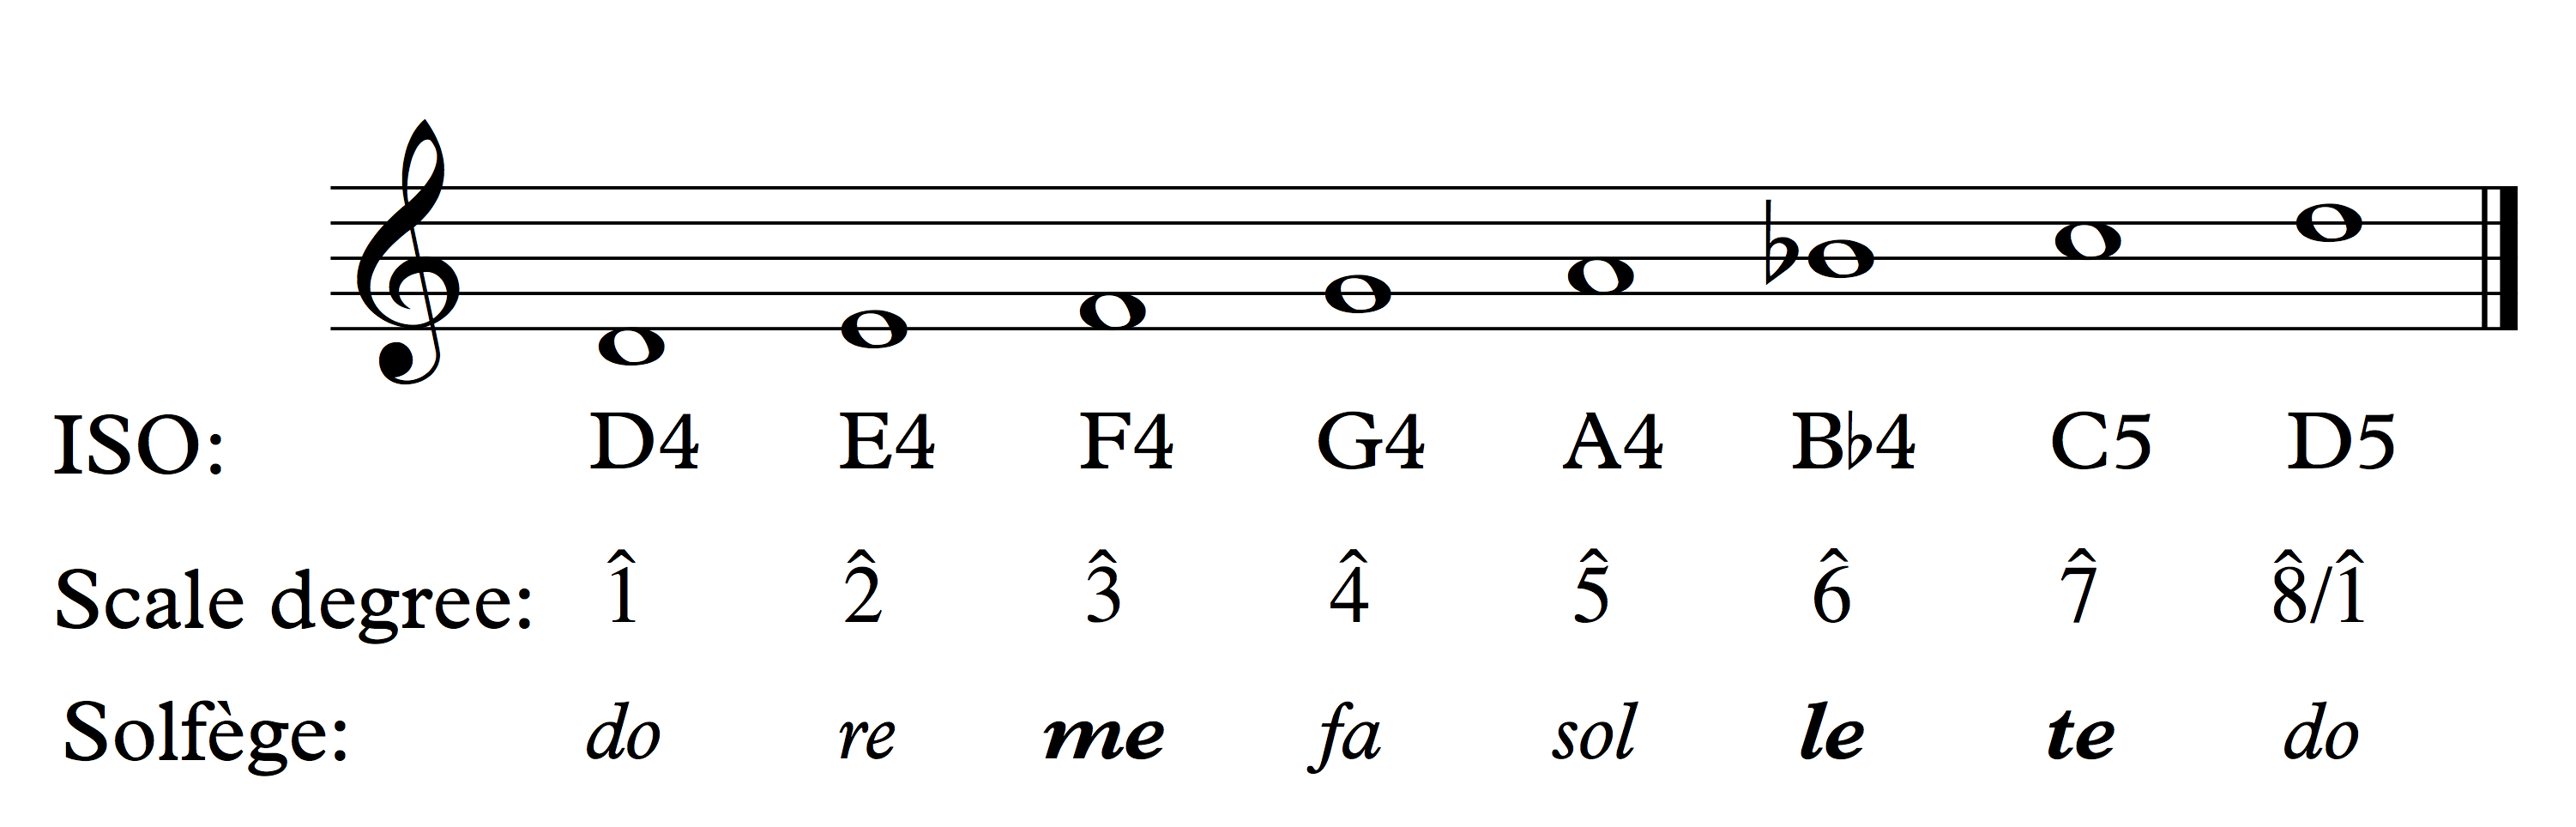 Scales And Scale Degrees Open Music Theory